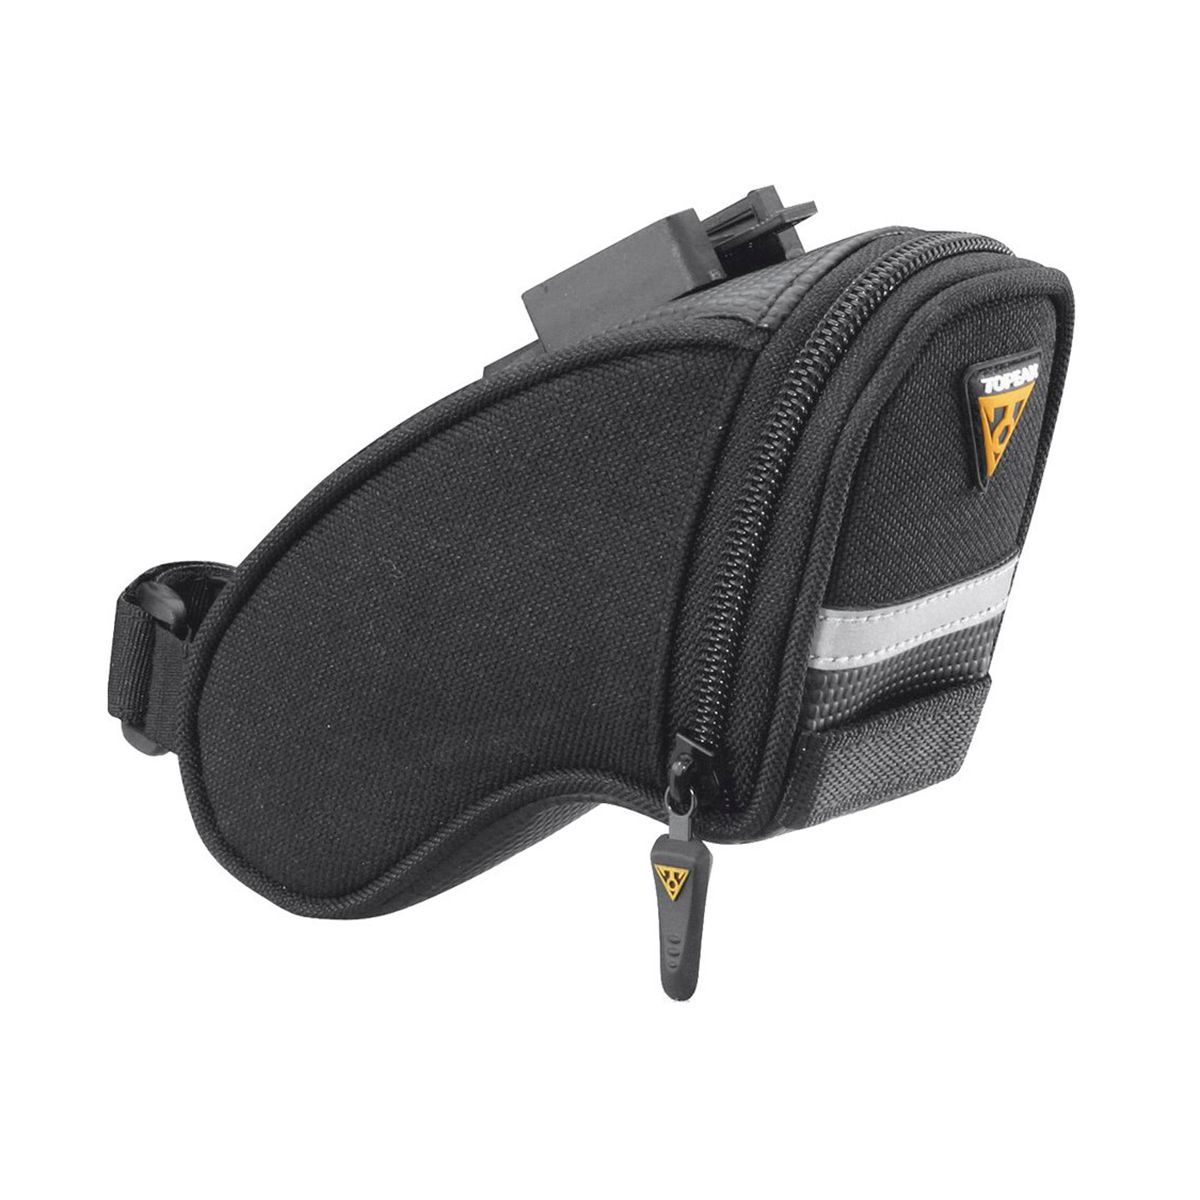 TOPEAK Micro Aero Wedge Pack saddle bag